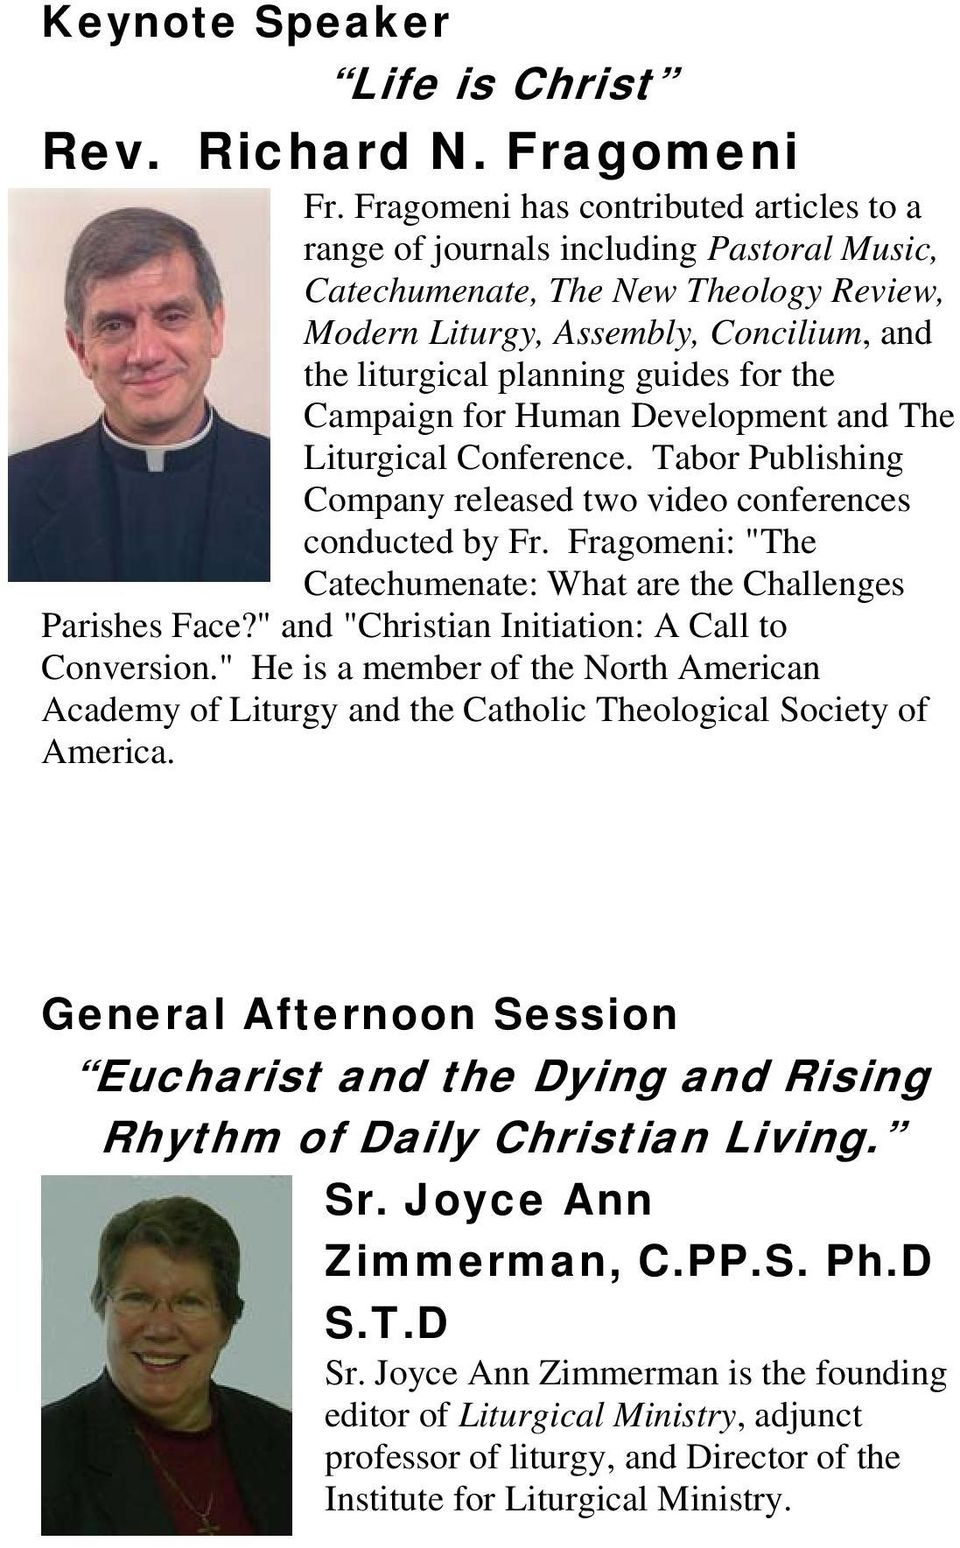 the Campaign for Human Development and The Liturgical Conference. Tabor Publishing Company released two video conferences conducted by Fr.